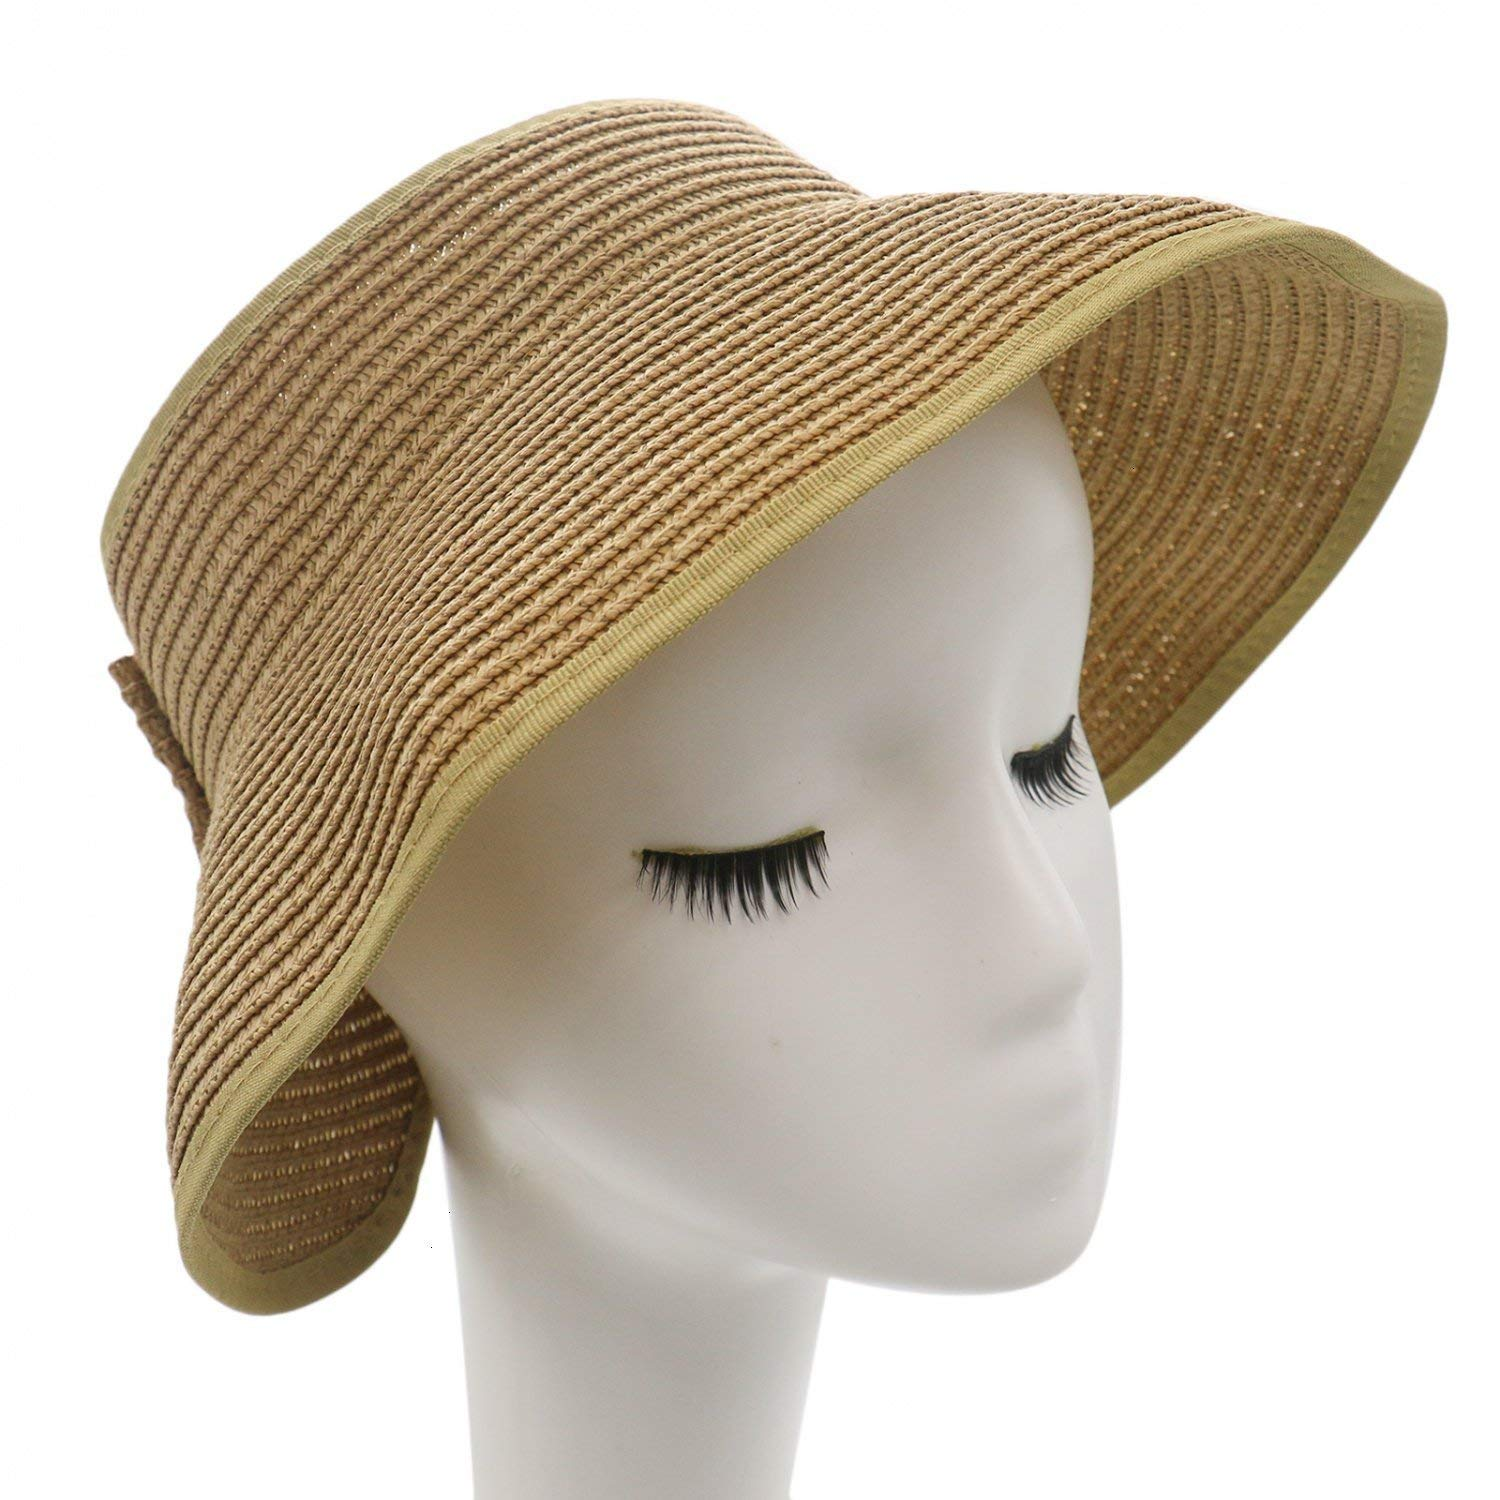 83f58345 Get Quotations · IDS Foldable Roll Up Wide Brim Bowknot Summer Beach Sun  Visor Straw Hat Cap for Women